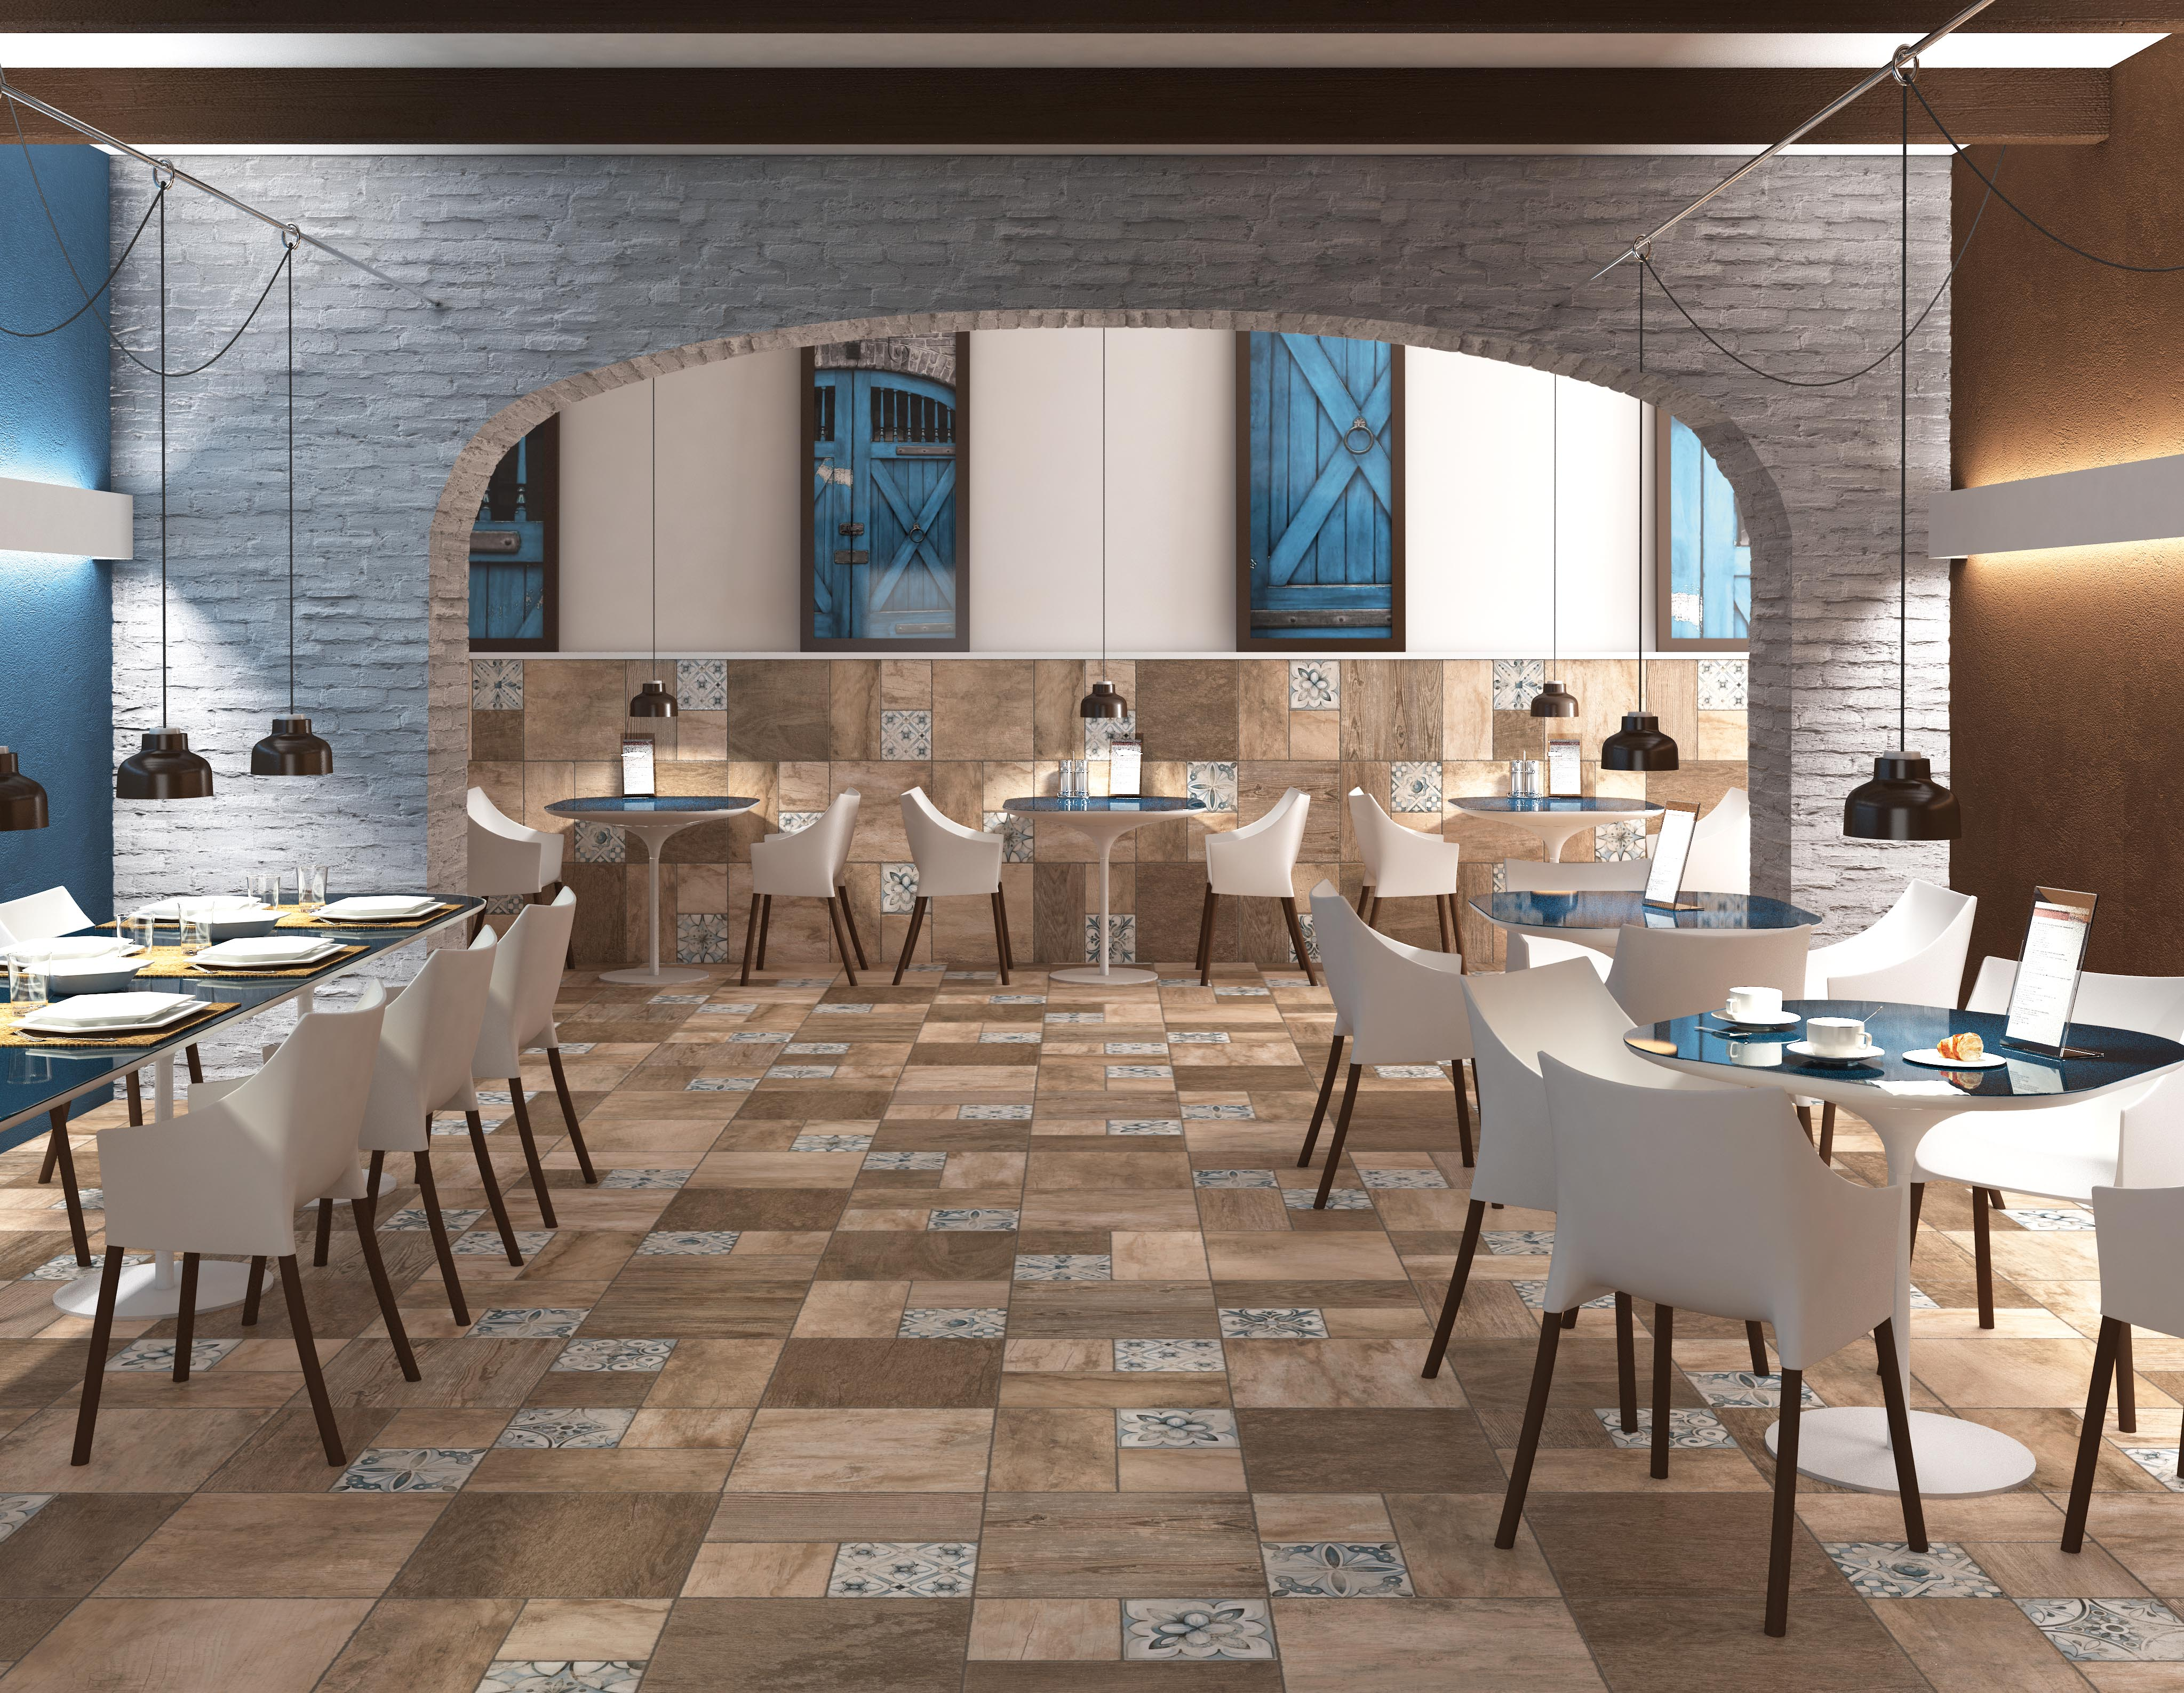 PATCHWOOD Ceramic and Porcelain Tiles by Arcana Ceramica